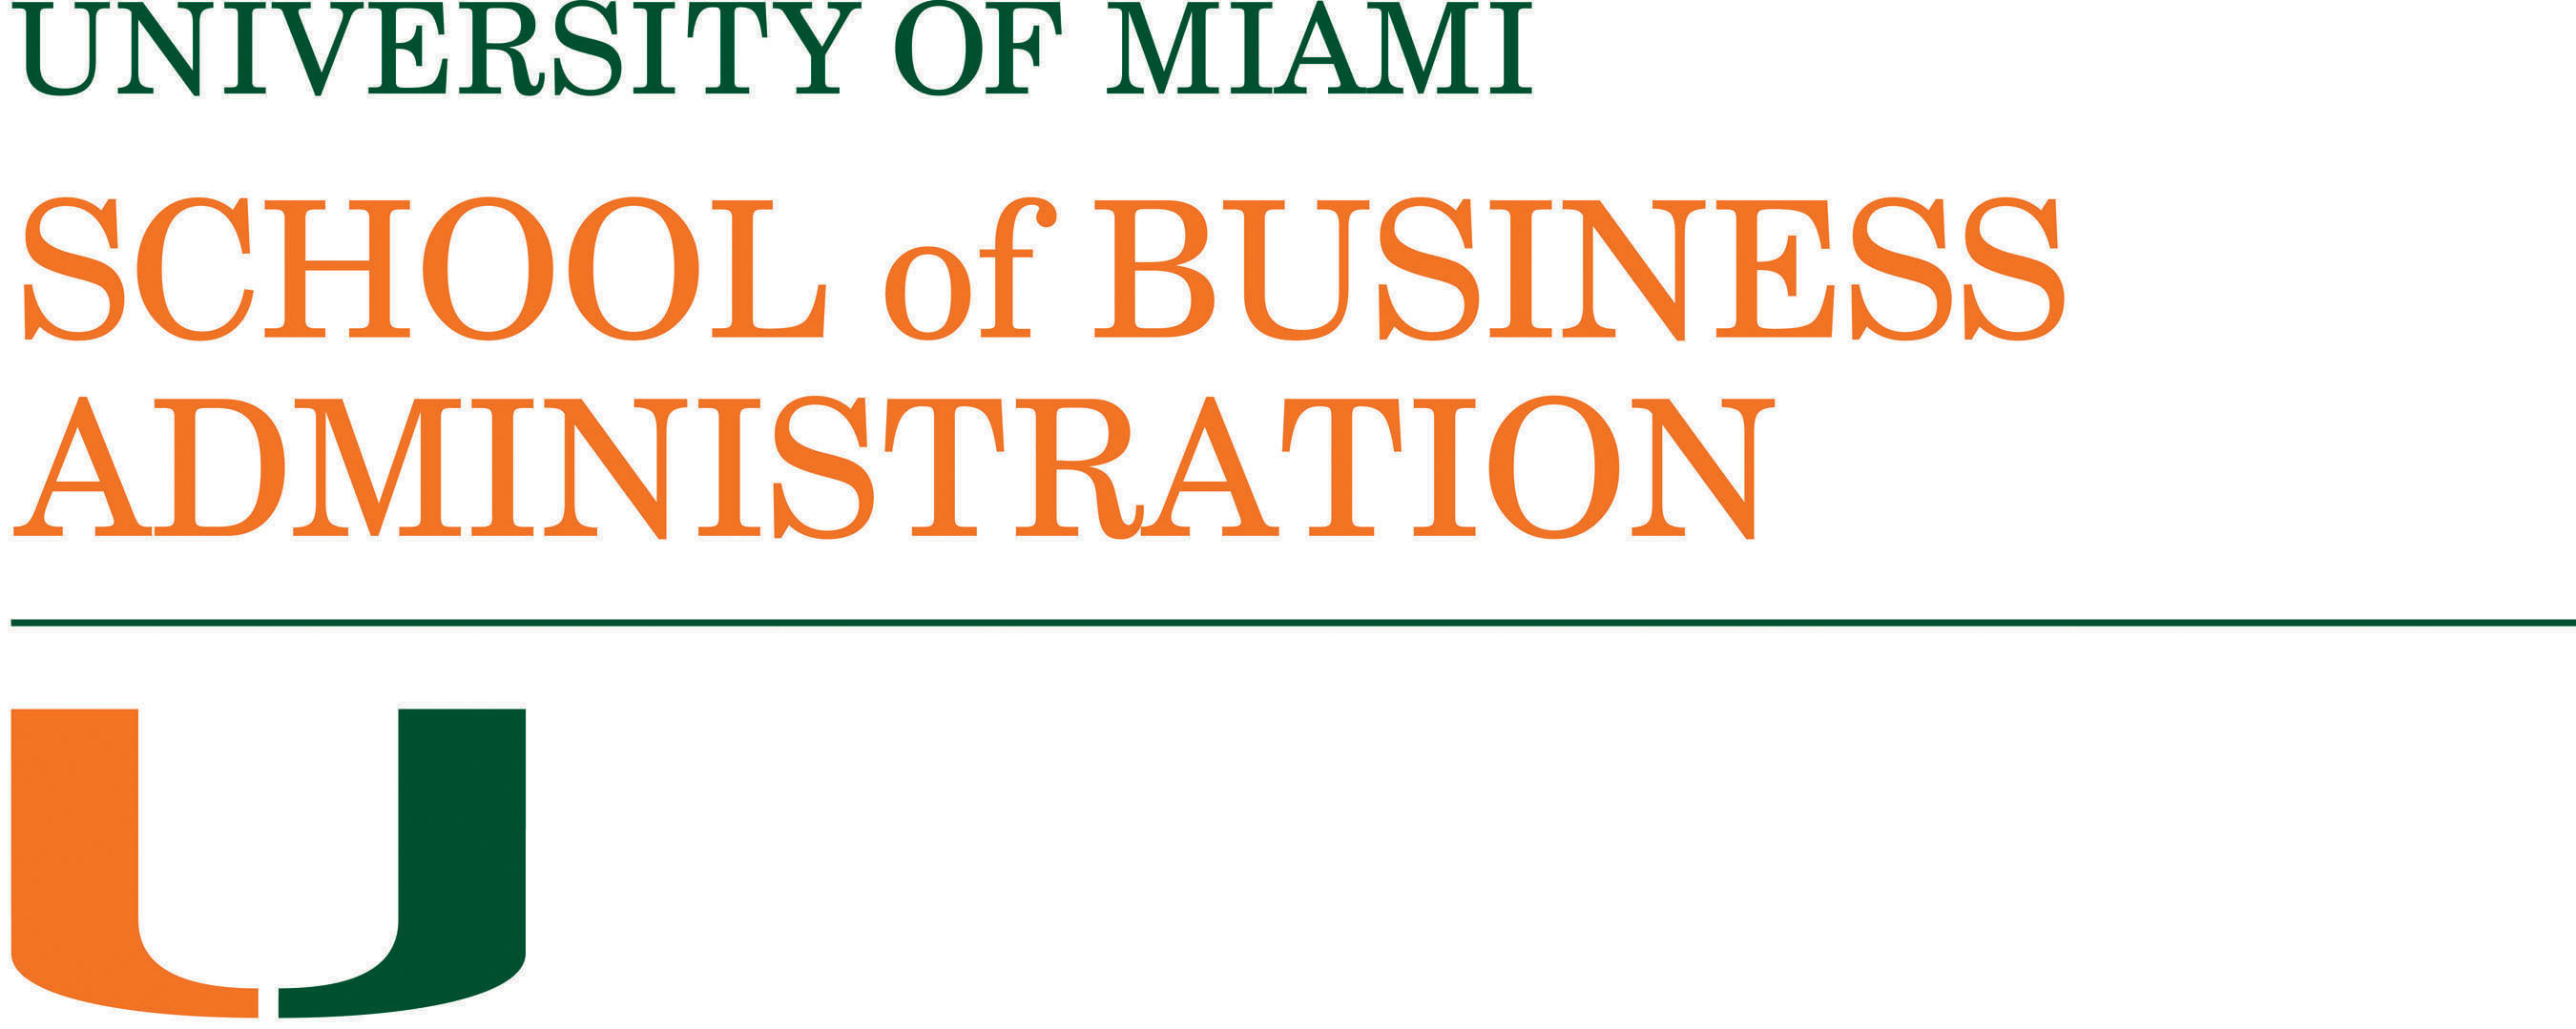 University of Miami School of Business Administration Logo.